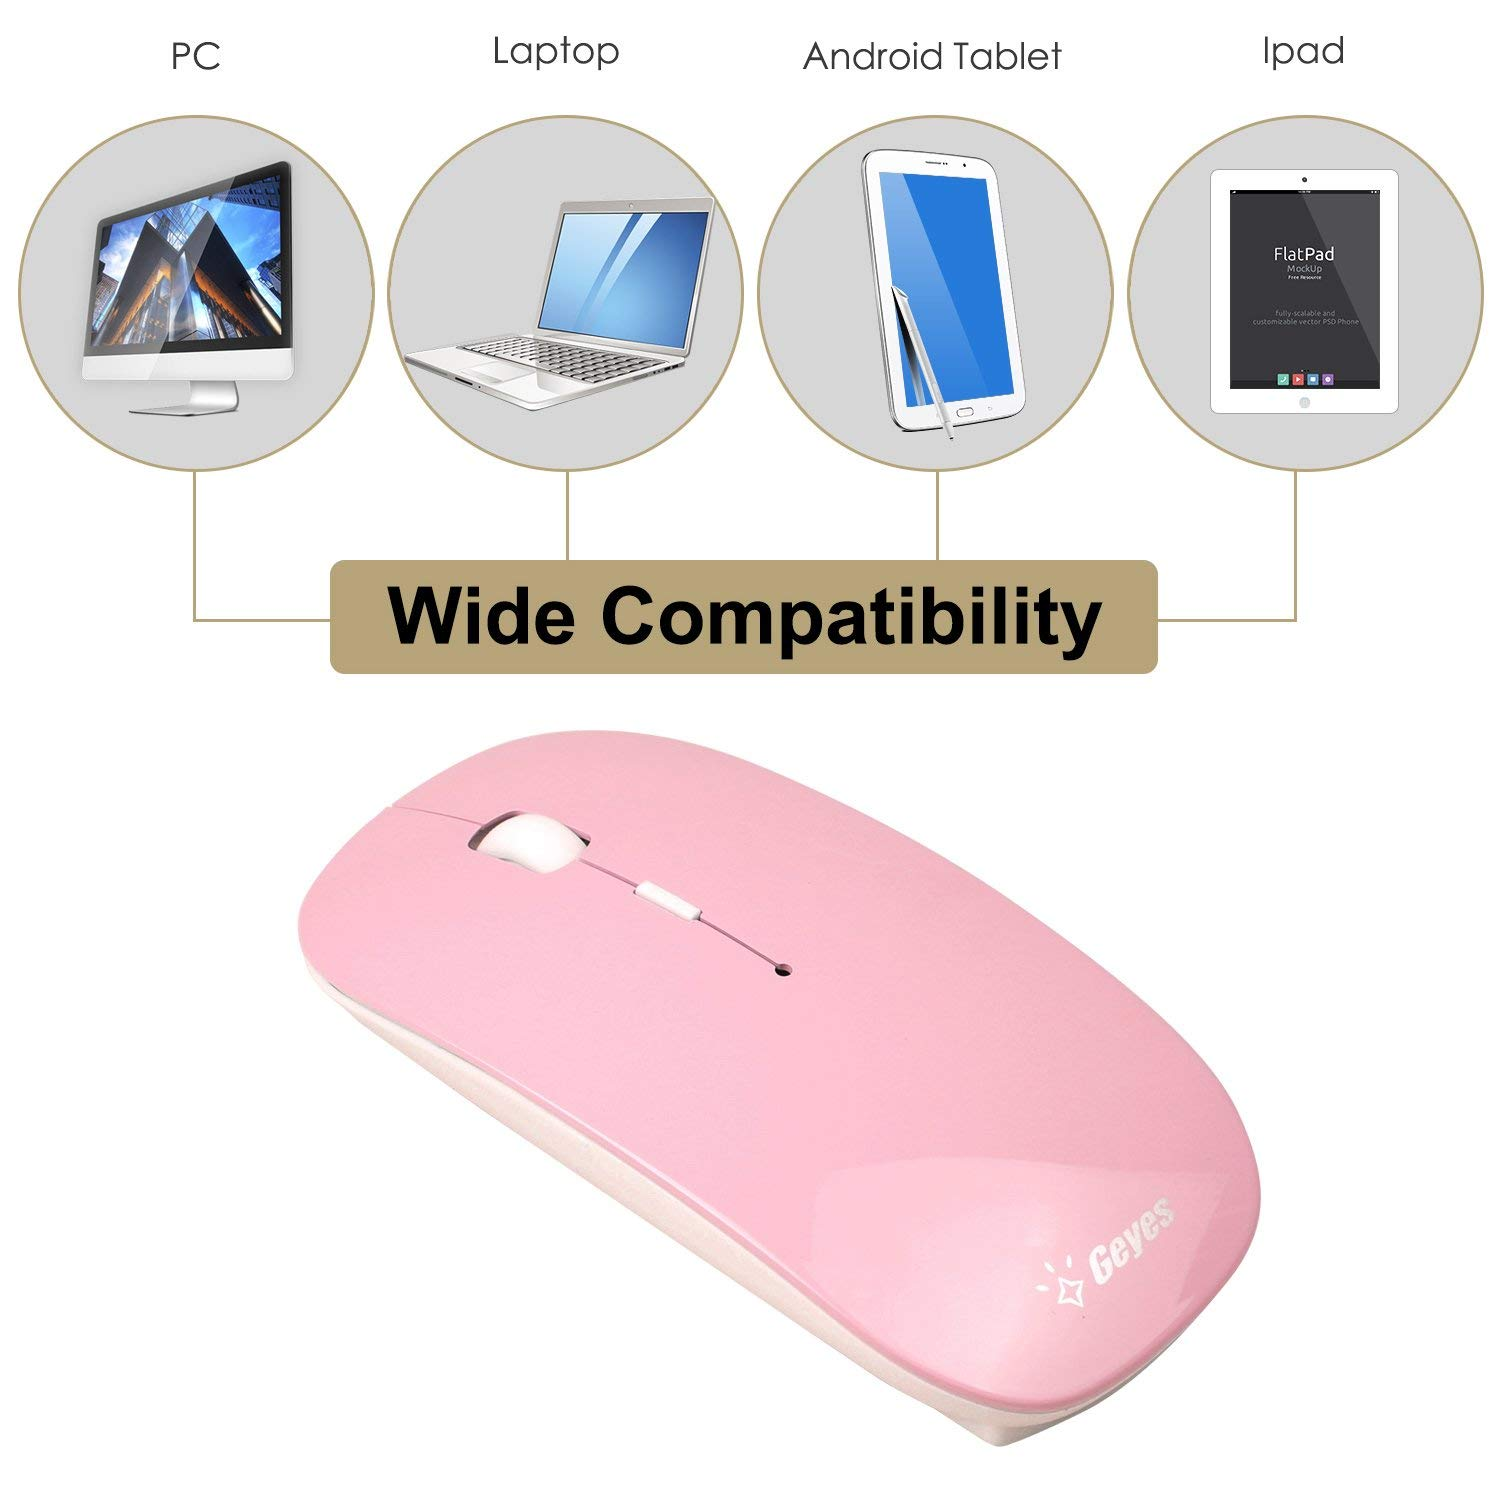 Tablet VEGCOO C13 Wireless Rechargeable Mouse Slim Silent Optical Mouse with USB Receiver /& Type-C Adapter for Laptop PC MacBook Travel /& Office Desktop Computer Notebook Blue